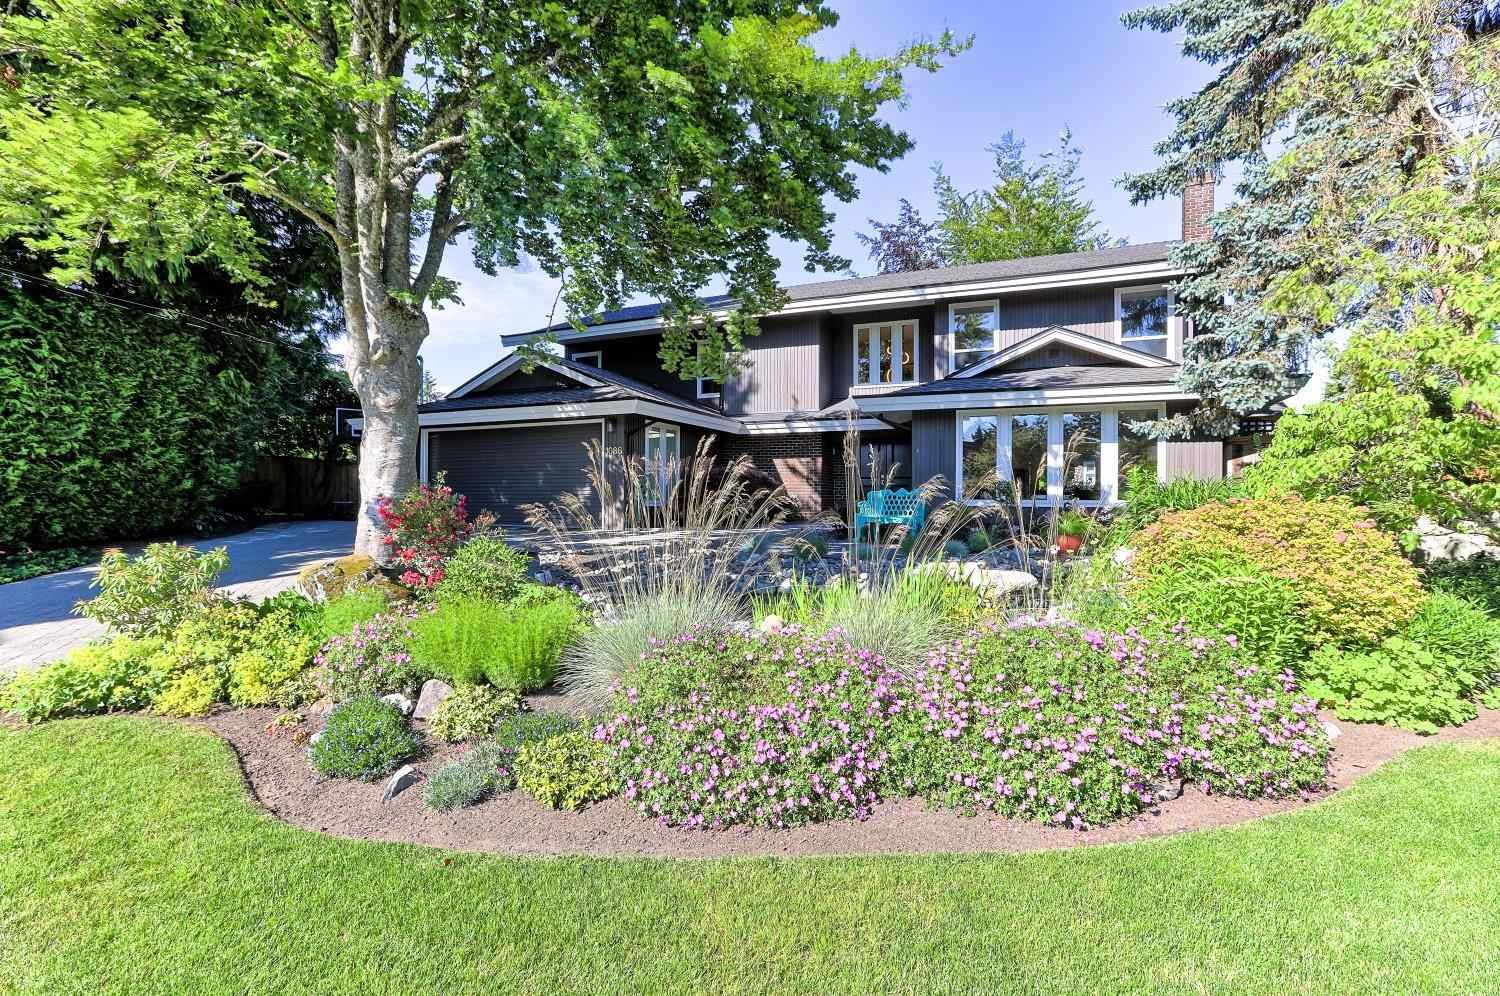 """Main Photo: 1086 PACIFIC Court in Delta: English Bluff House for sale in """"THE VILLAGE"""" (Tsawwassen)  : MLS®# R2553515"""